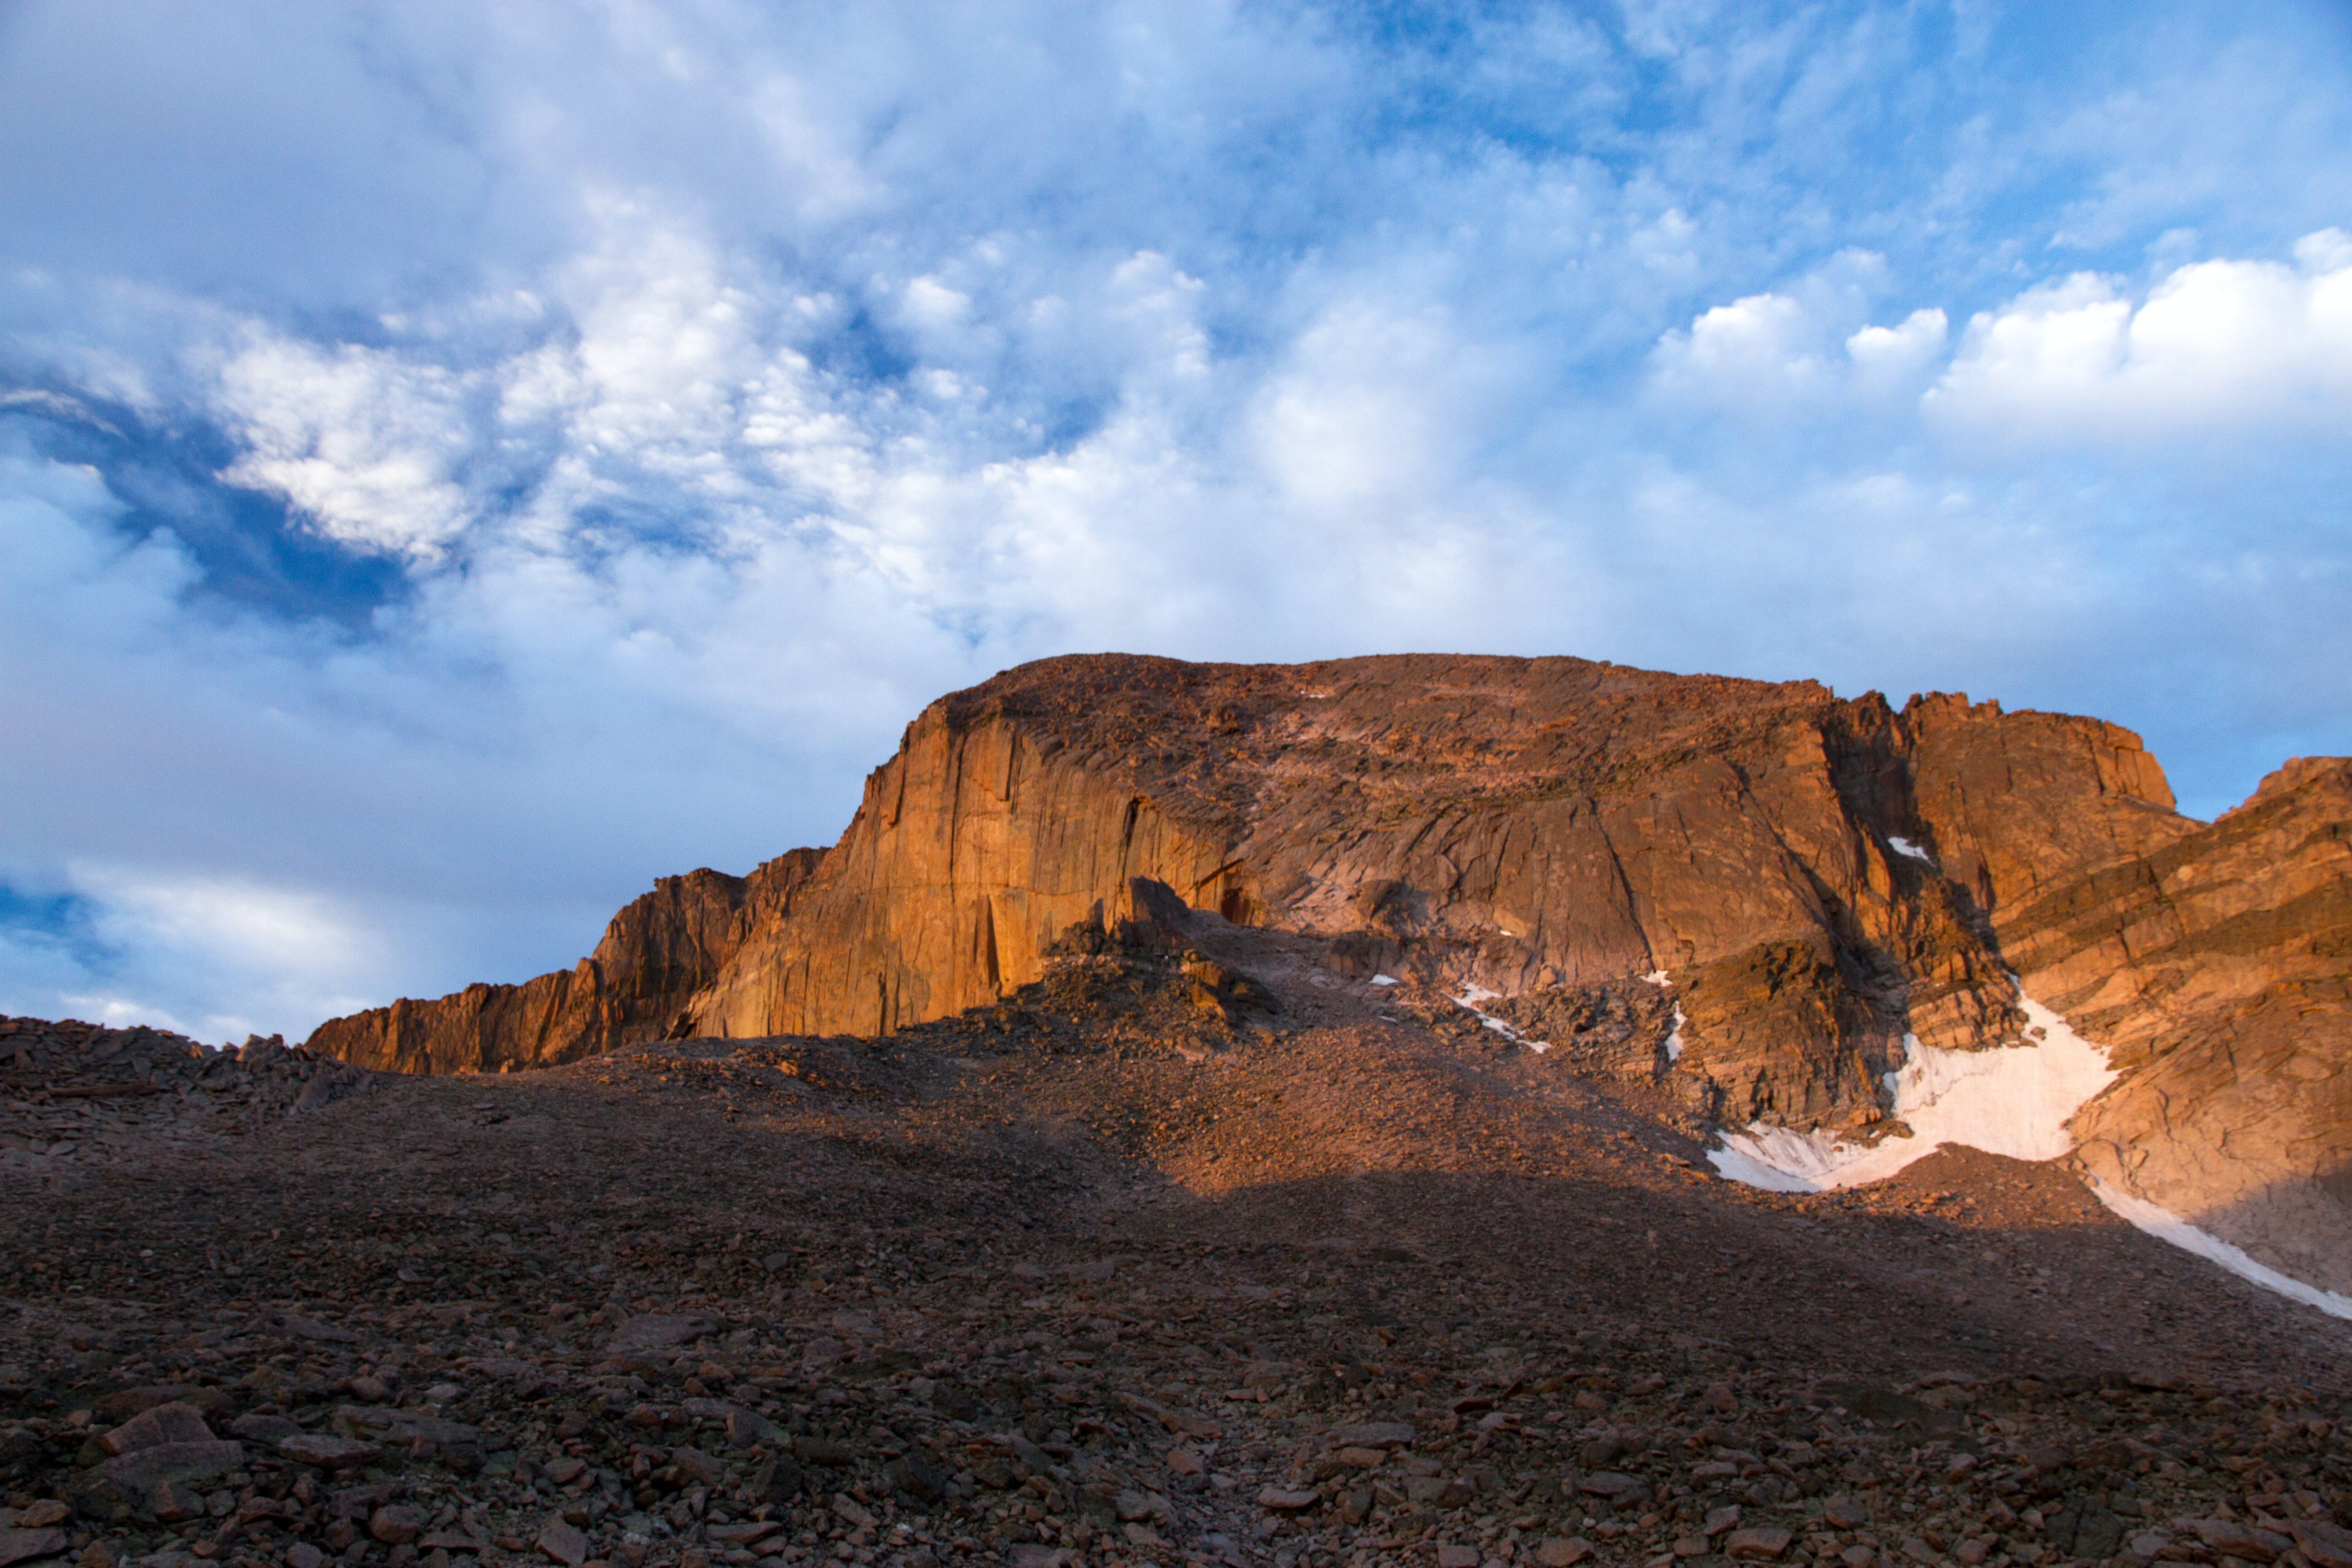 brown rock cliff under mid cloudy sky